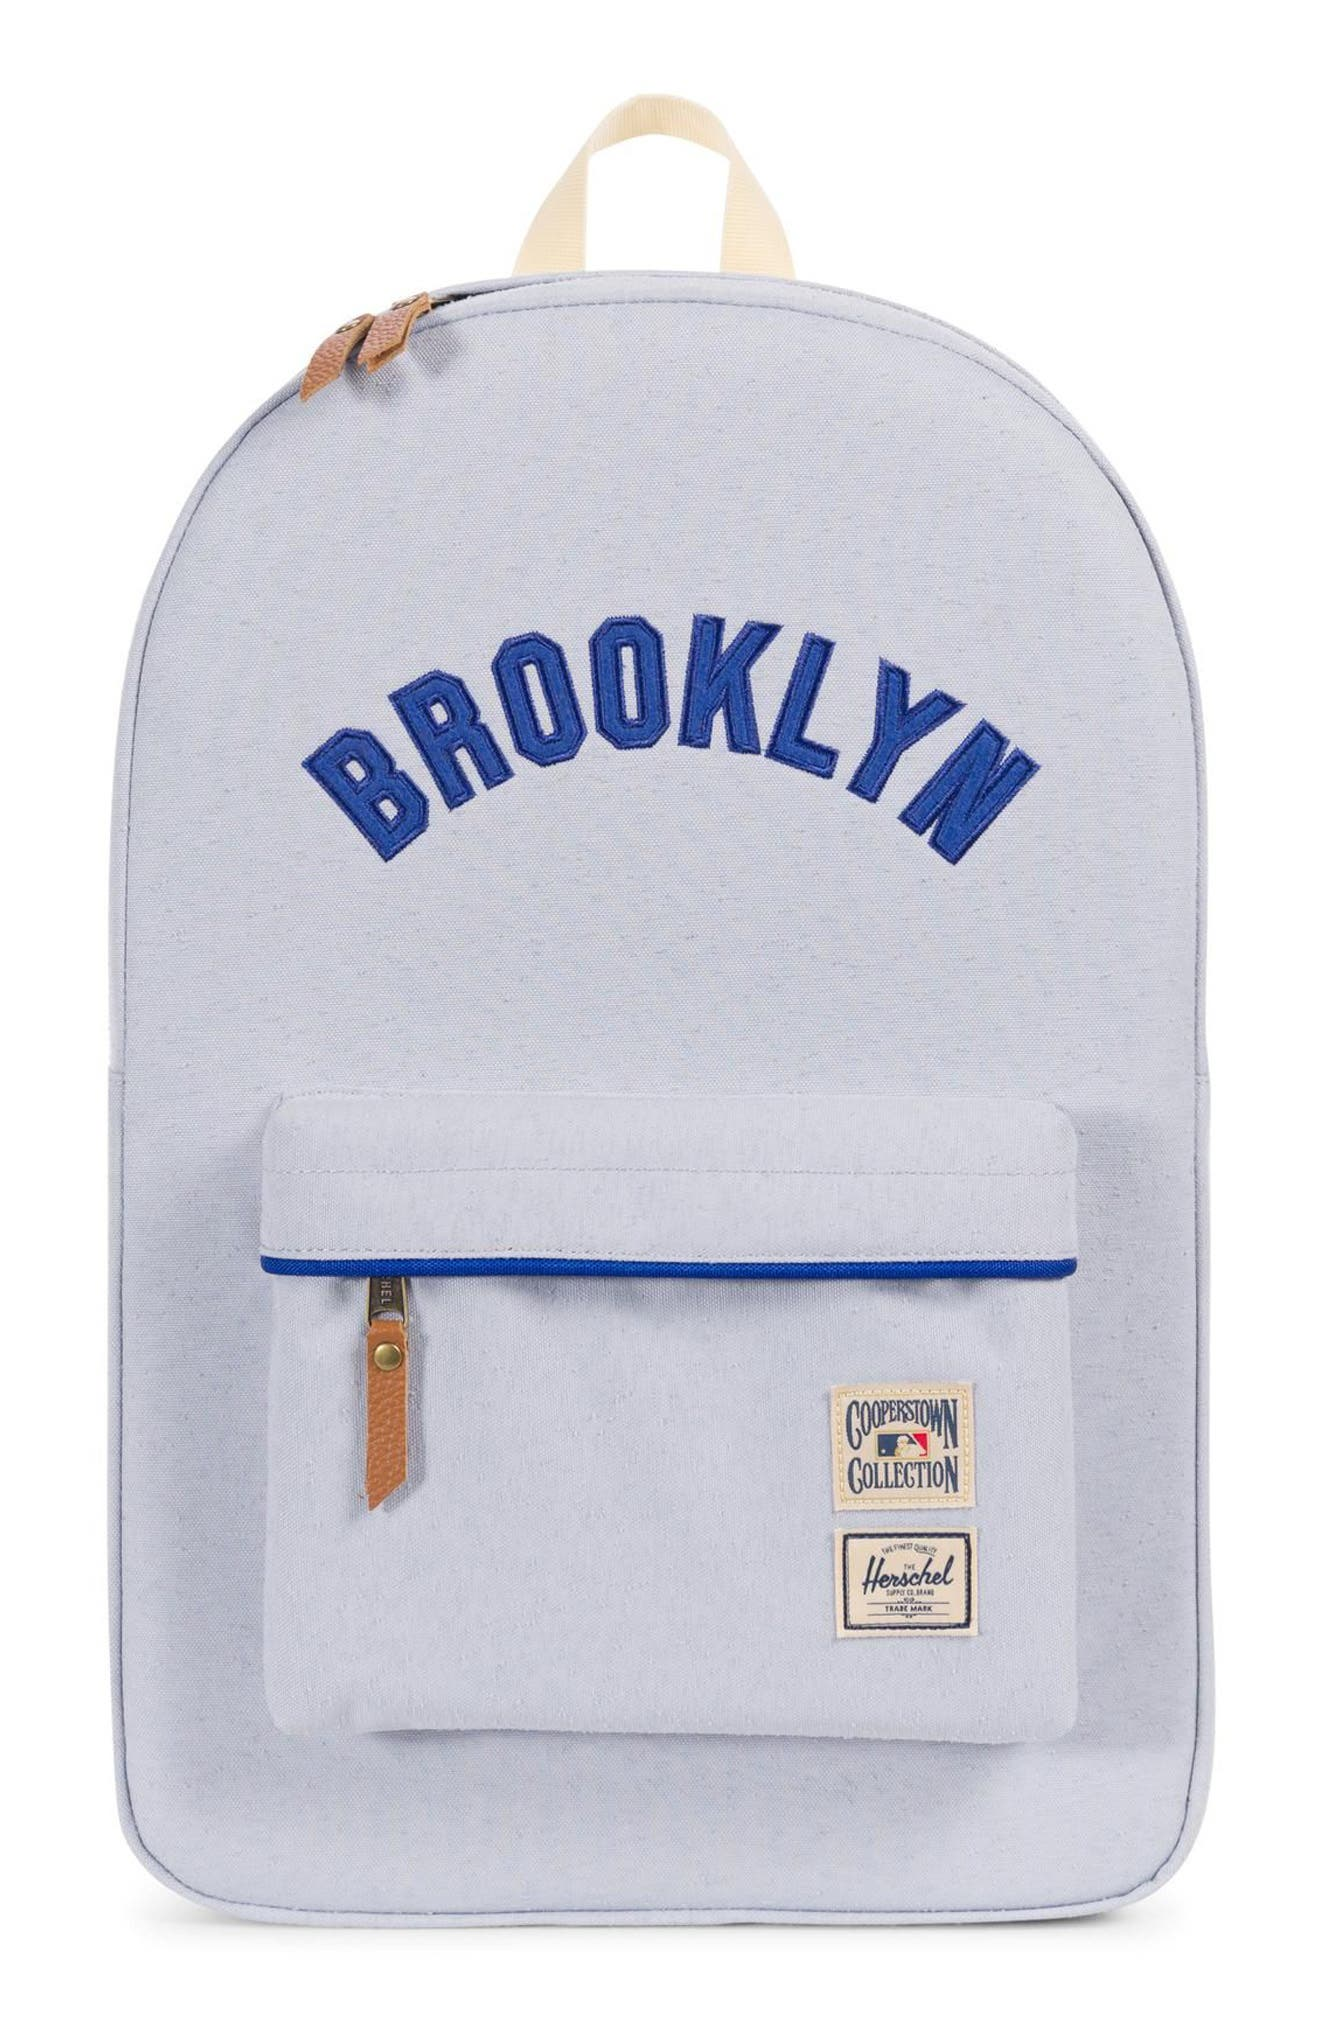 Herschel Supply Co. Heritage - Mlb Cooperstown Collection Backpack -